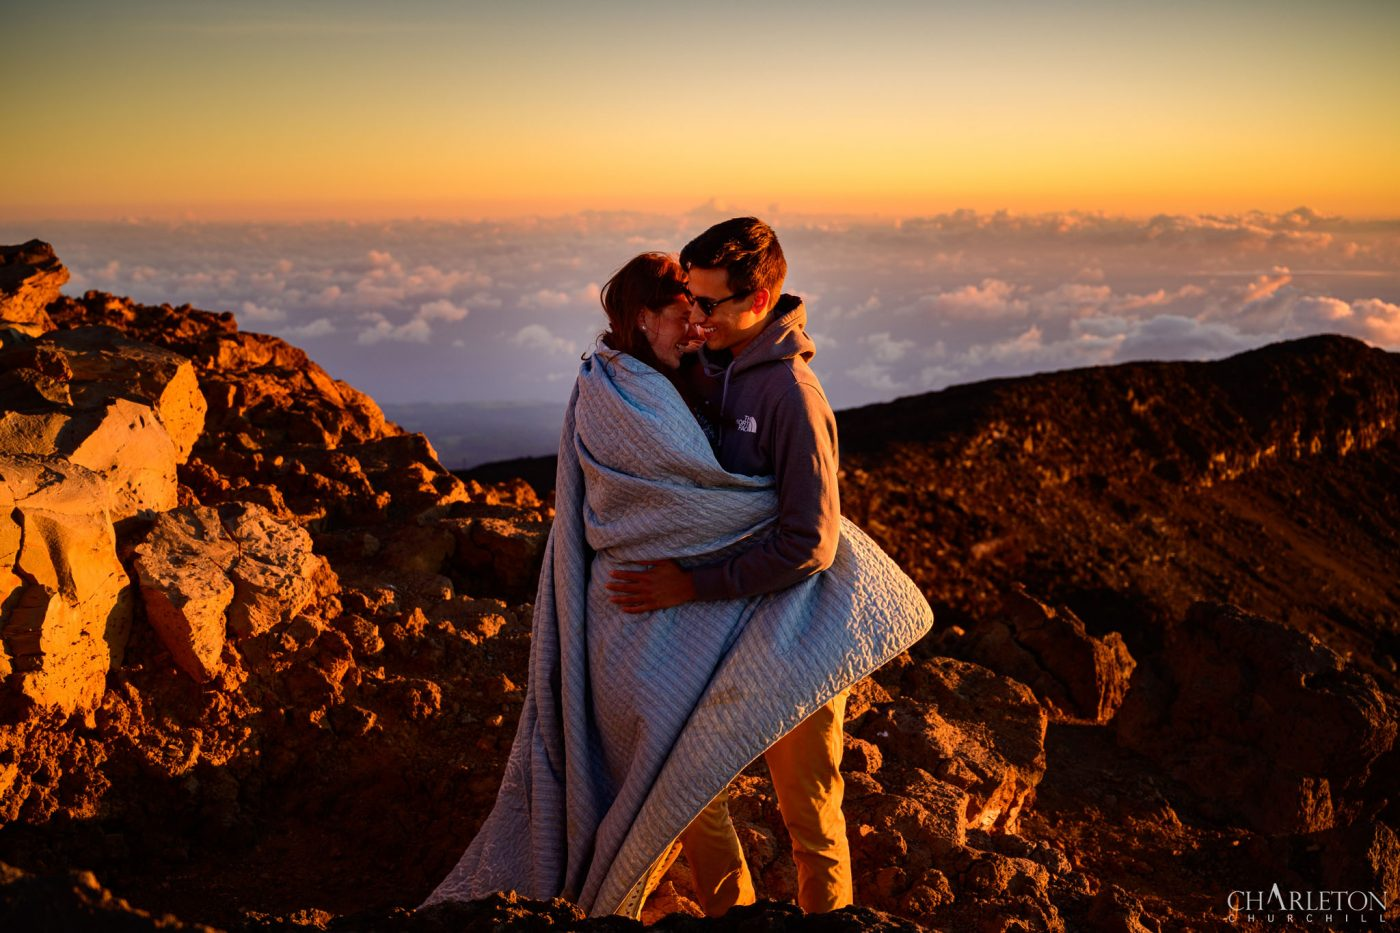 hawaii adventure wedding photographer capturing couple above the clouds on the mountain of Haleakala national park